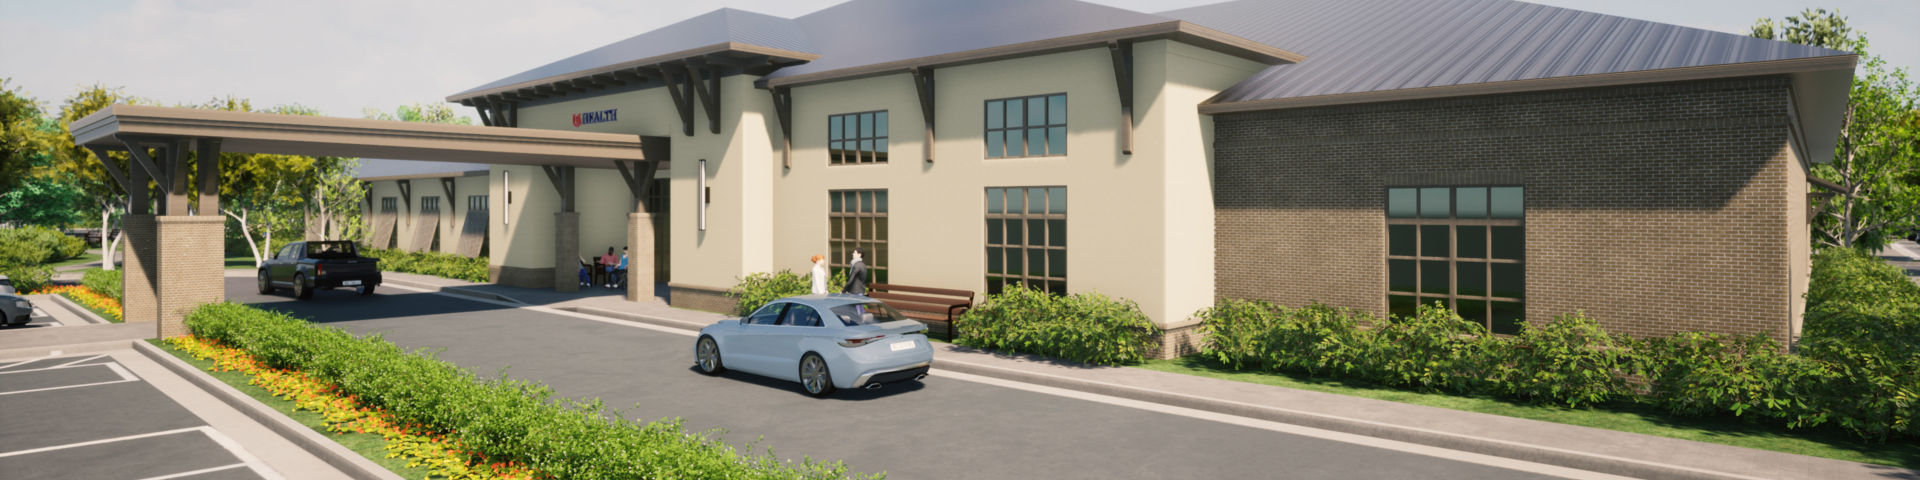 Mapp Family Campus Entry Rendering